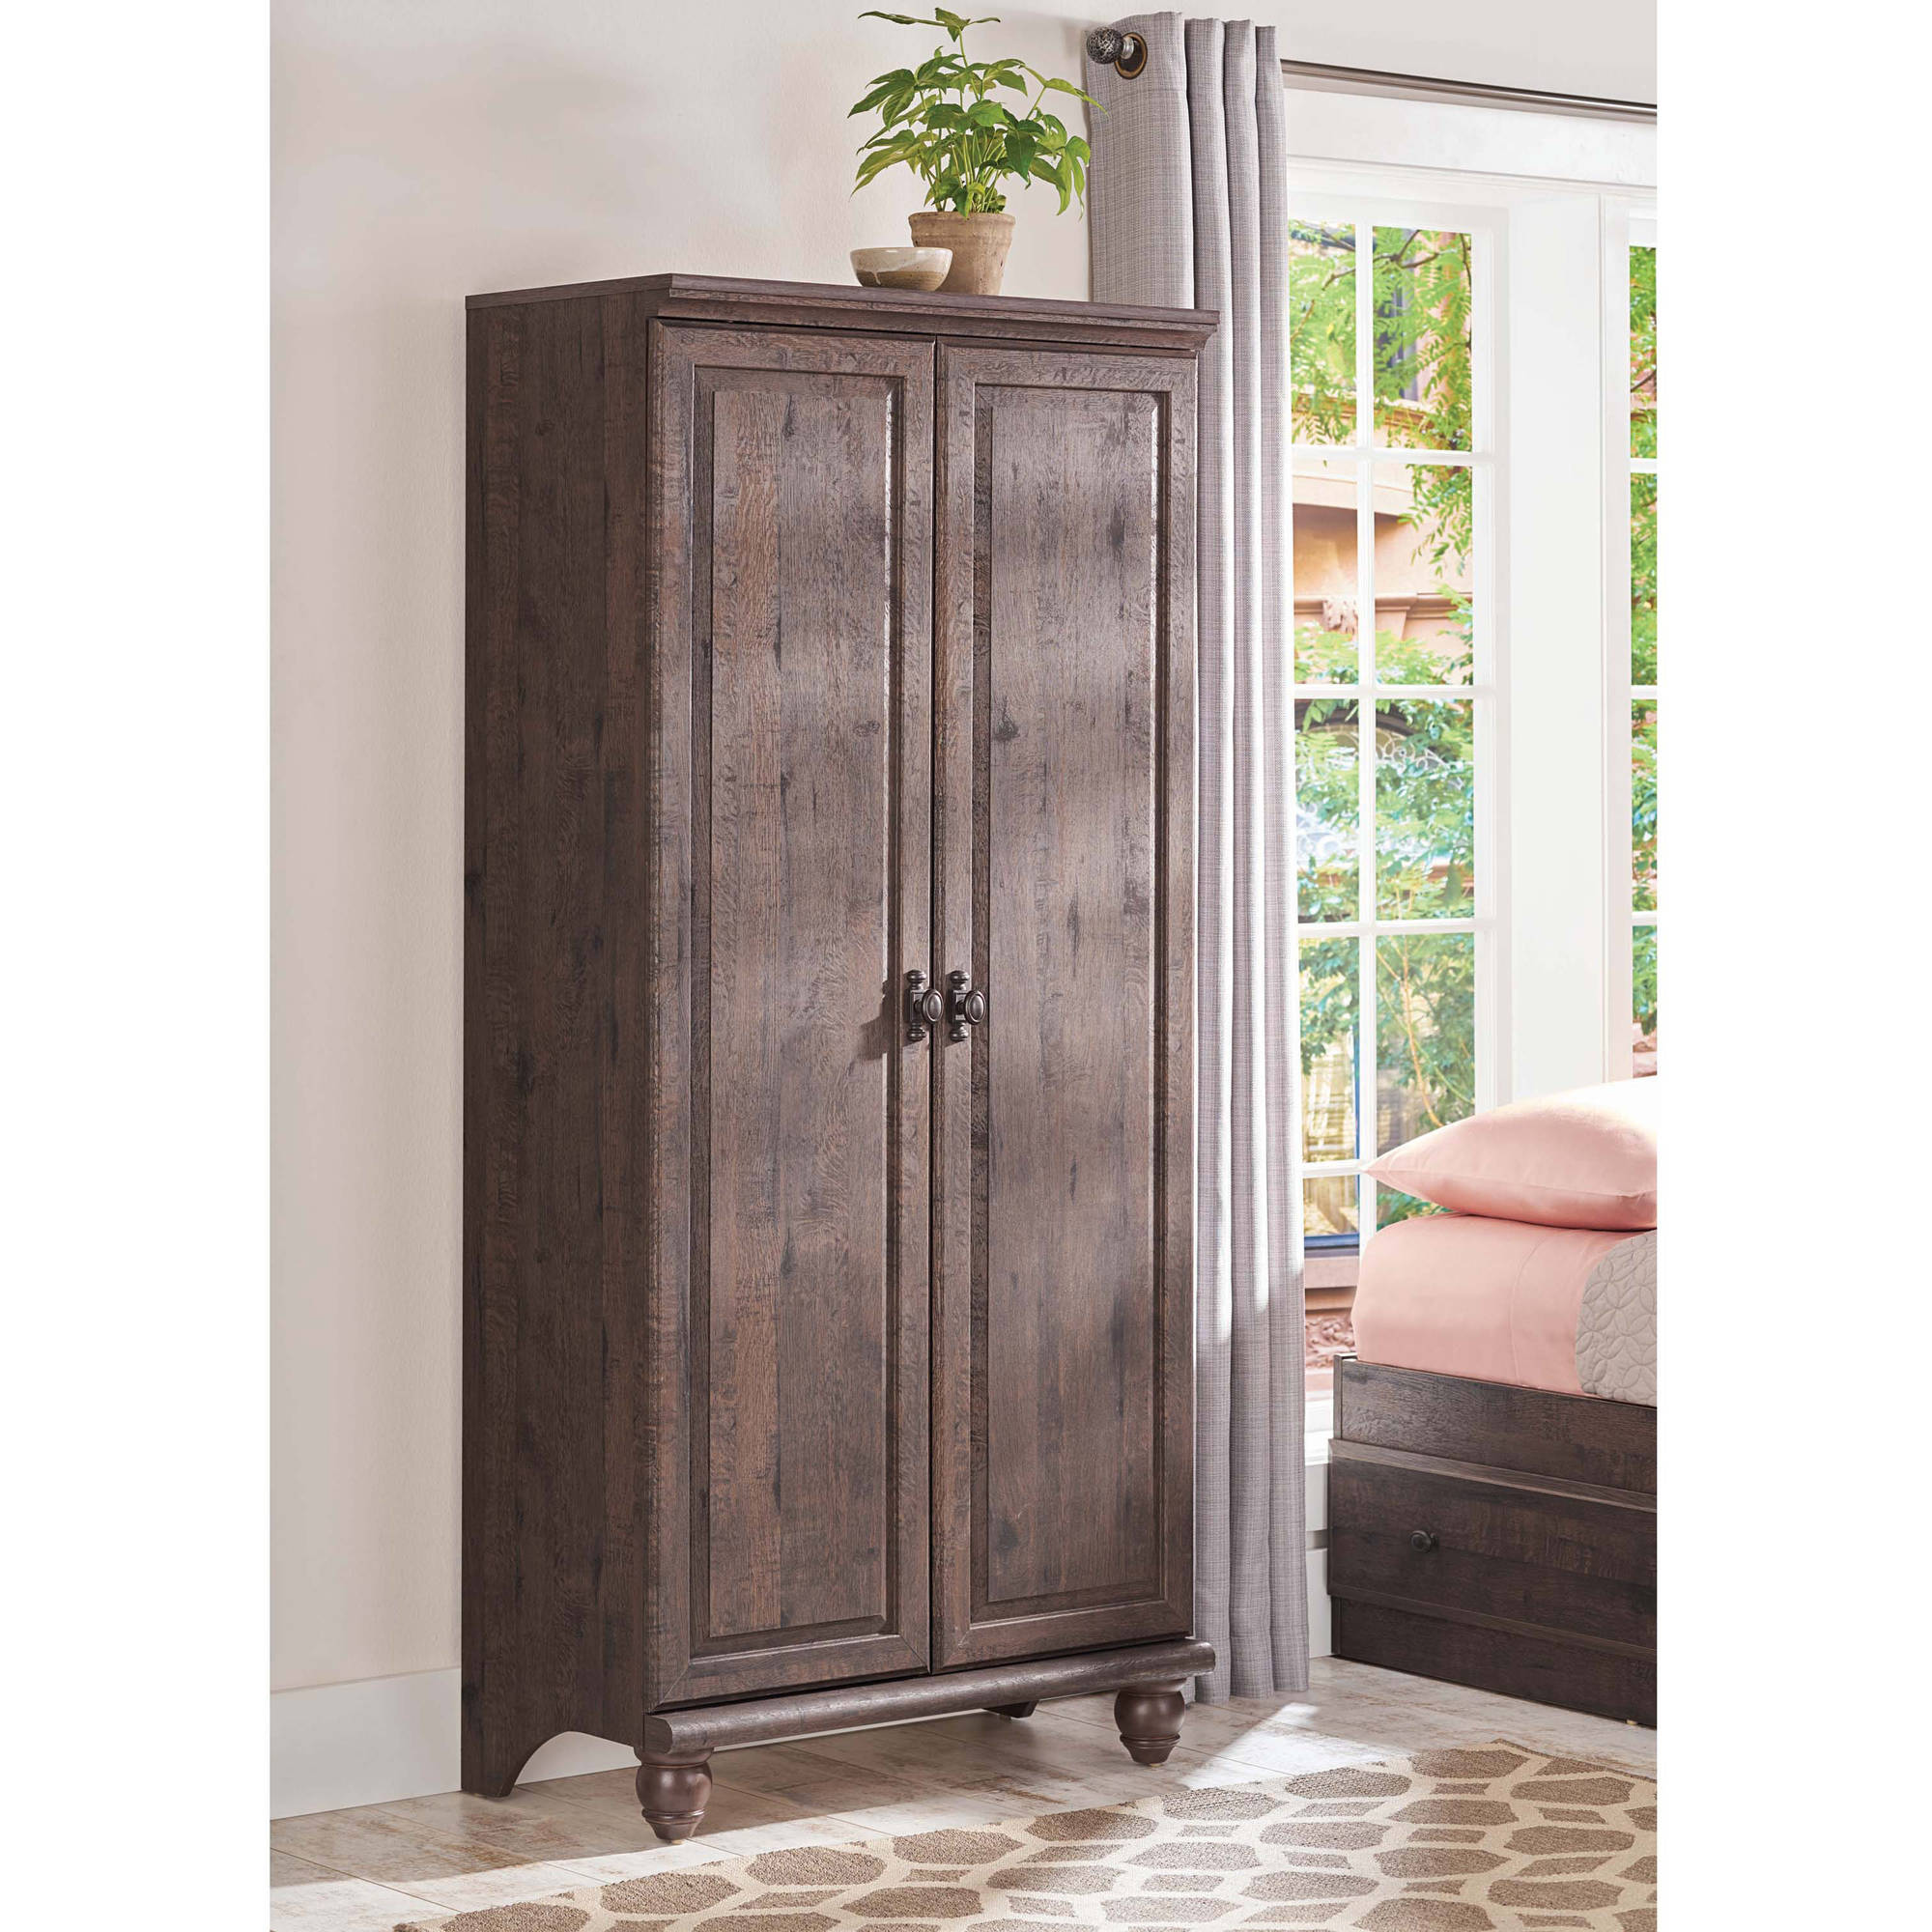 Your home improvements refference solid wood wardrobe closet - Better Homes And Gardens Crossmill Storage Cabinet Multiple Finishes Walmart Com